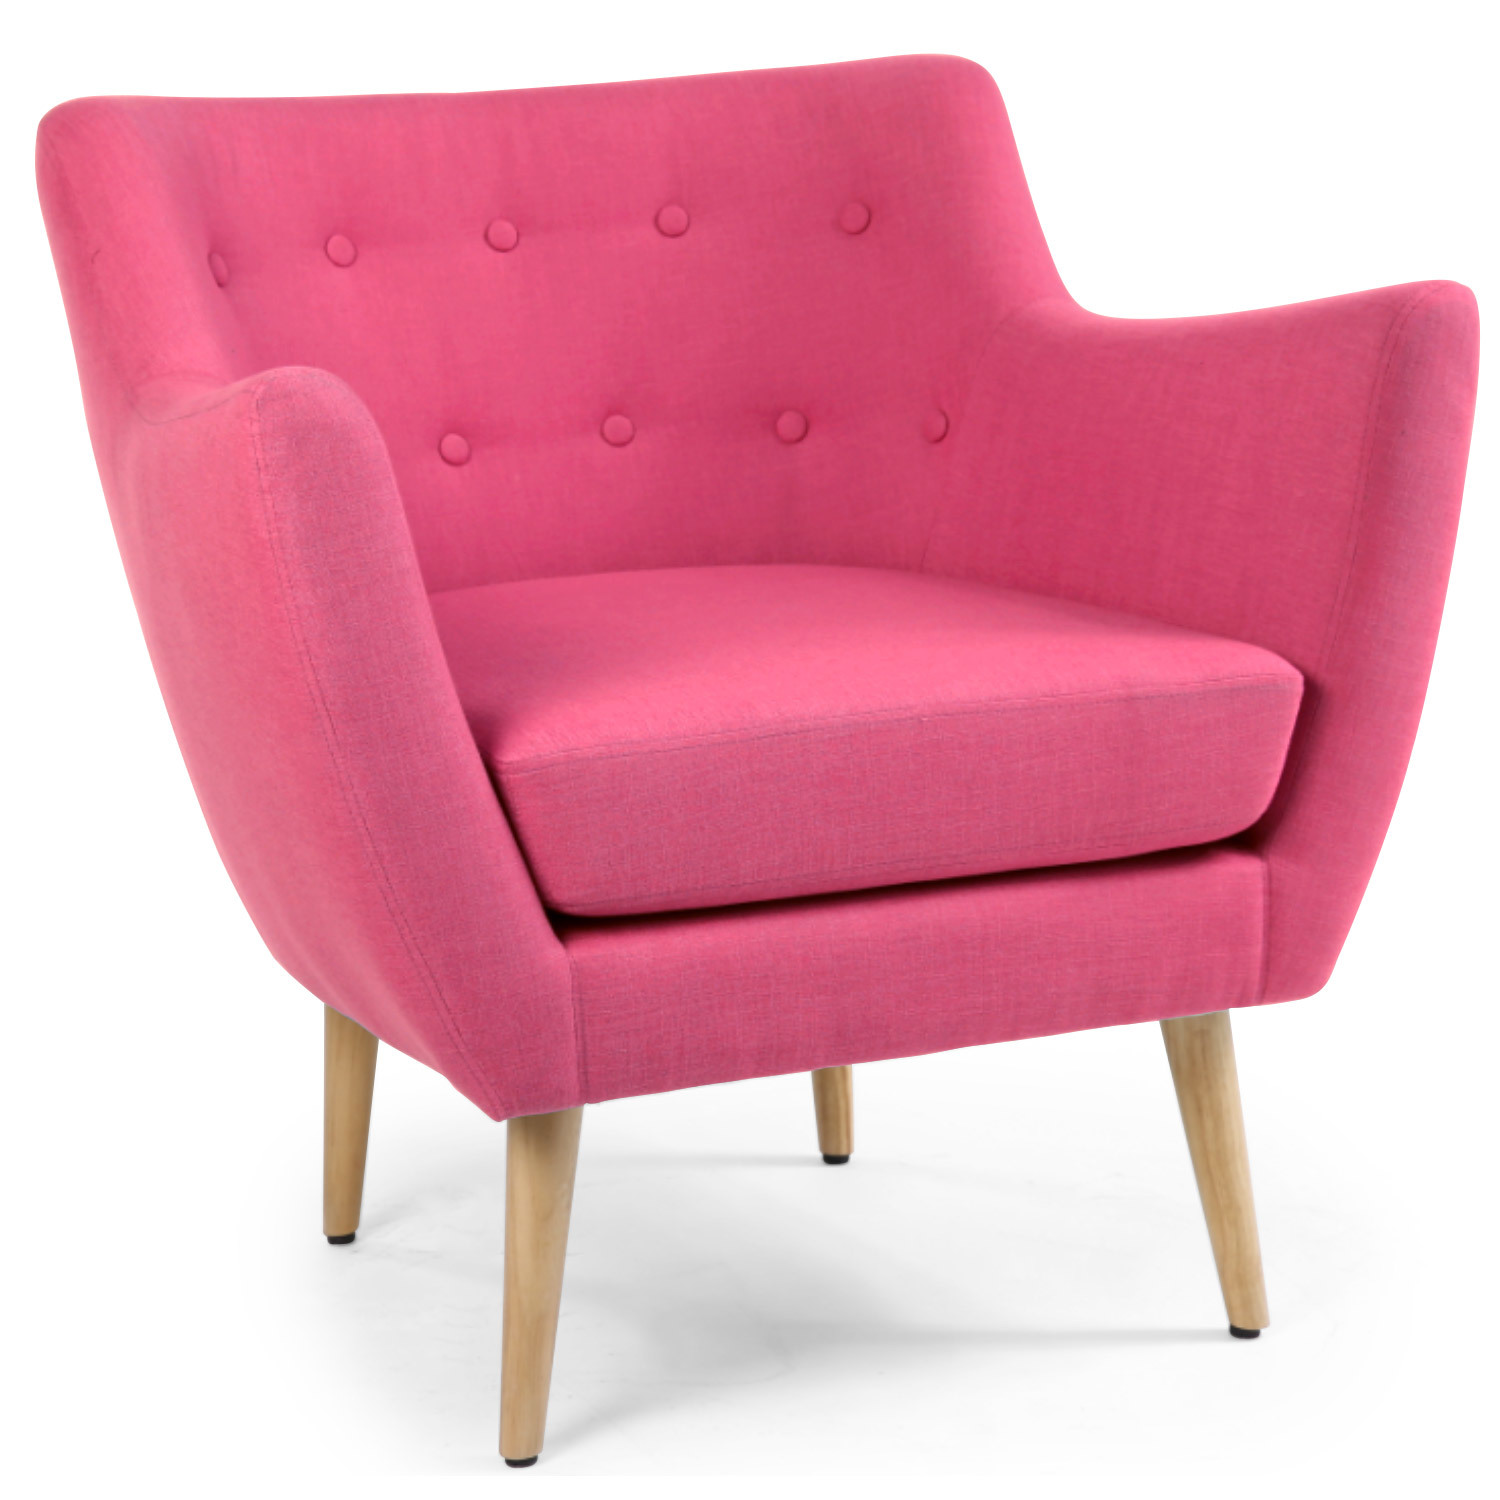 Fauteuil scandinave Molly Tissu Rose